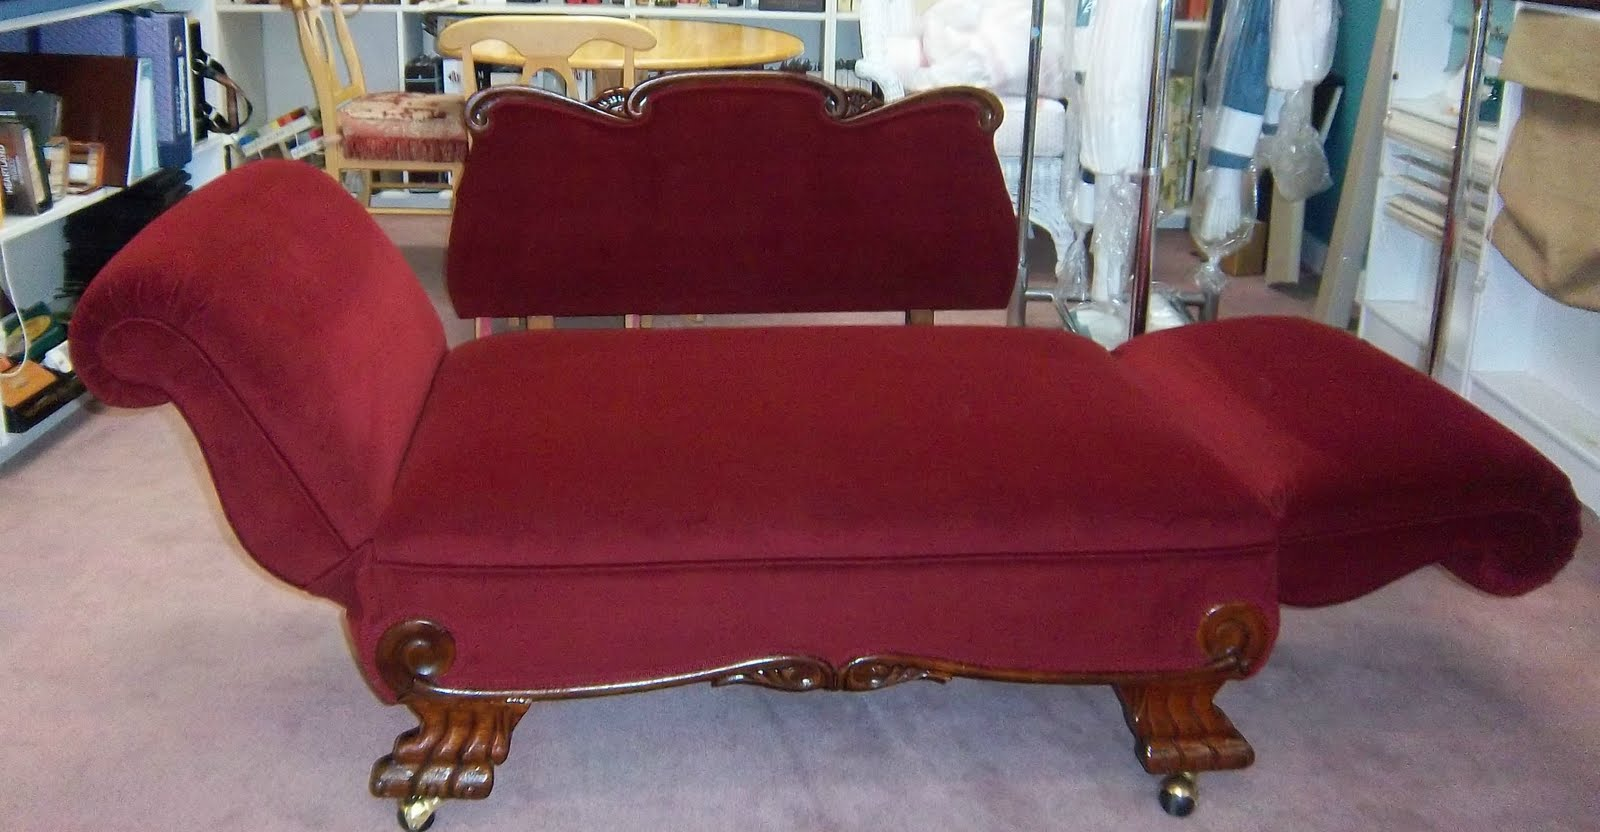 Antique convertible sofa craig upholstering for Chaise lounge convertible bed